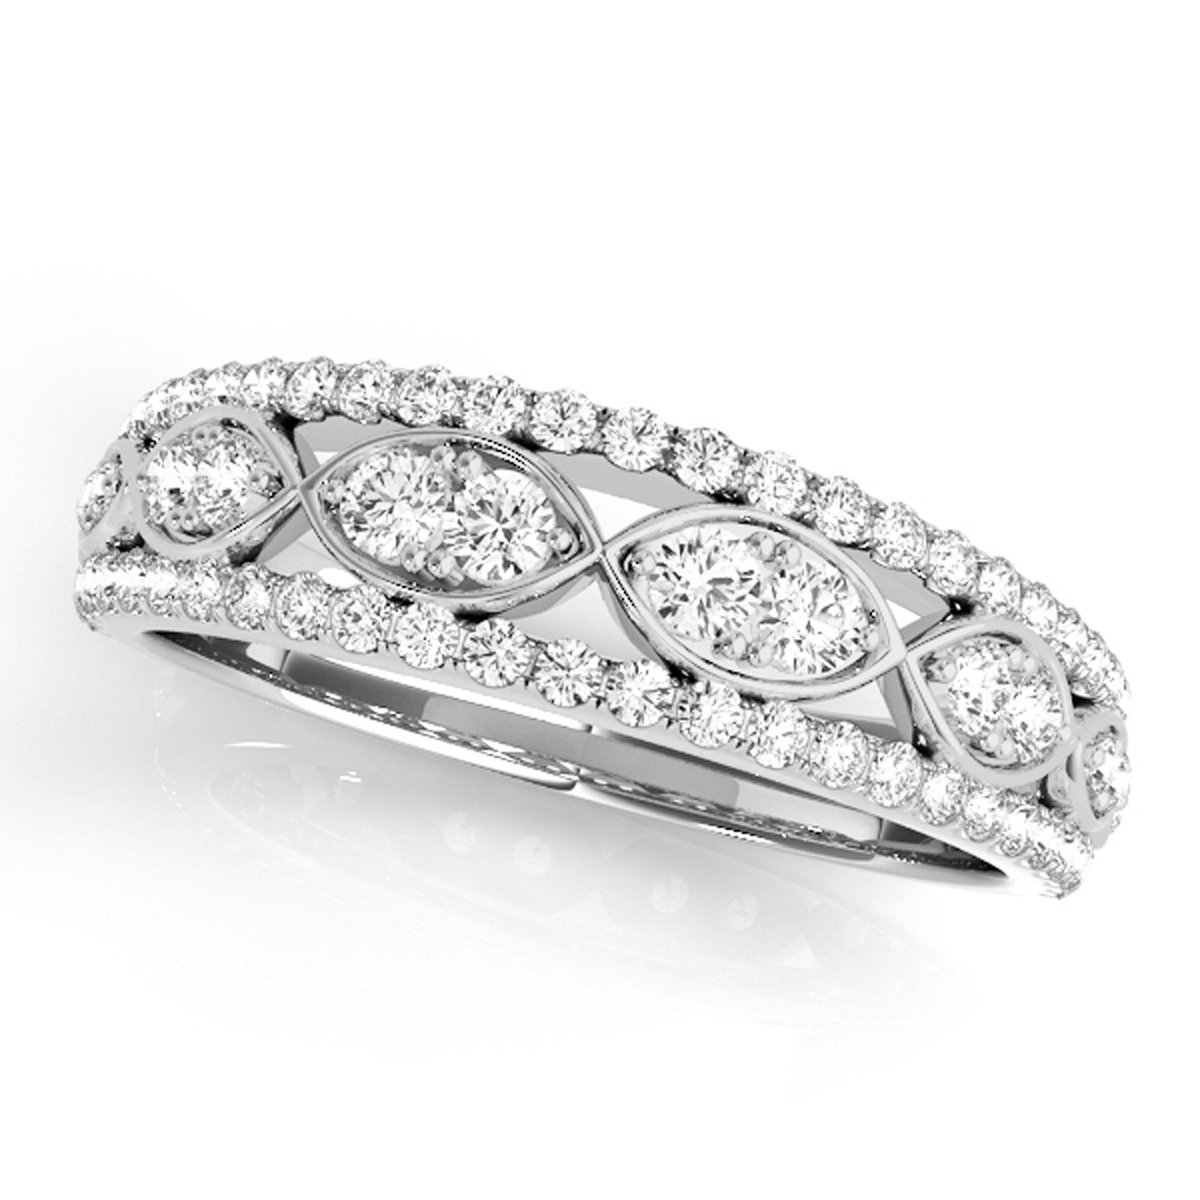 MauliJewels 0.50 Ctw. Diamond Delicate Wedding Band in 14K White Gold by MauliJewels